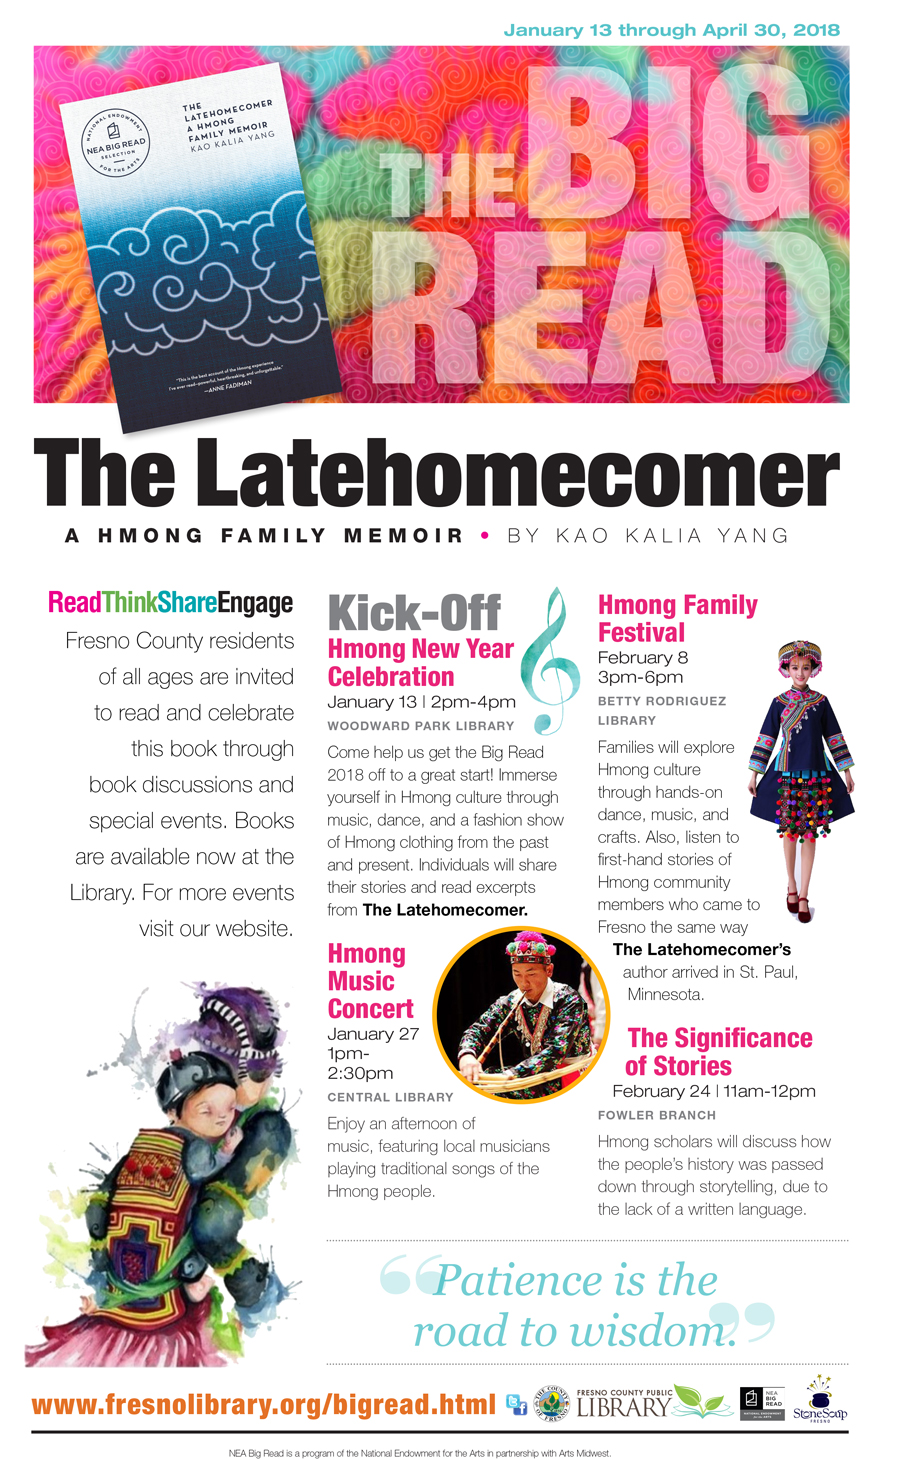 LatehomecomerSchedule-2018-page-1